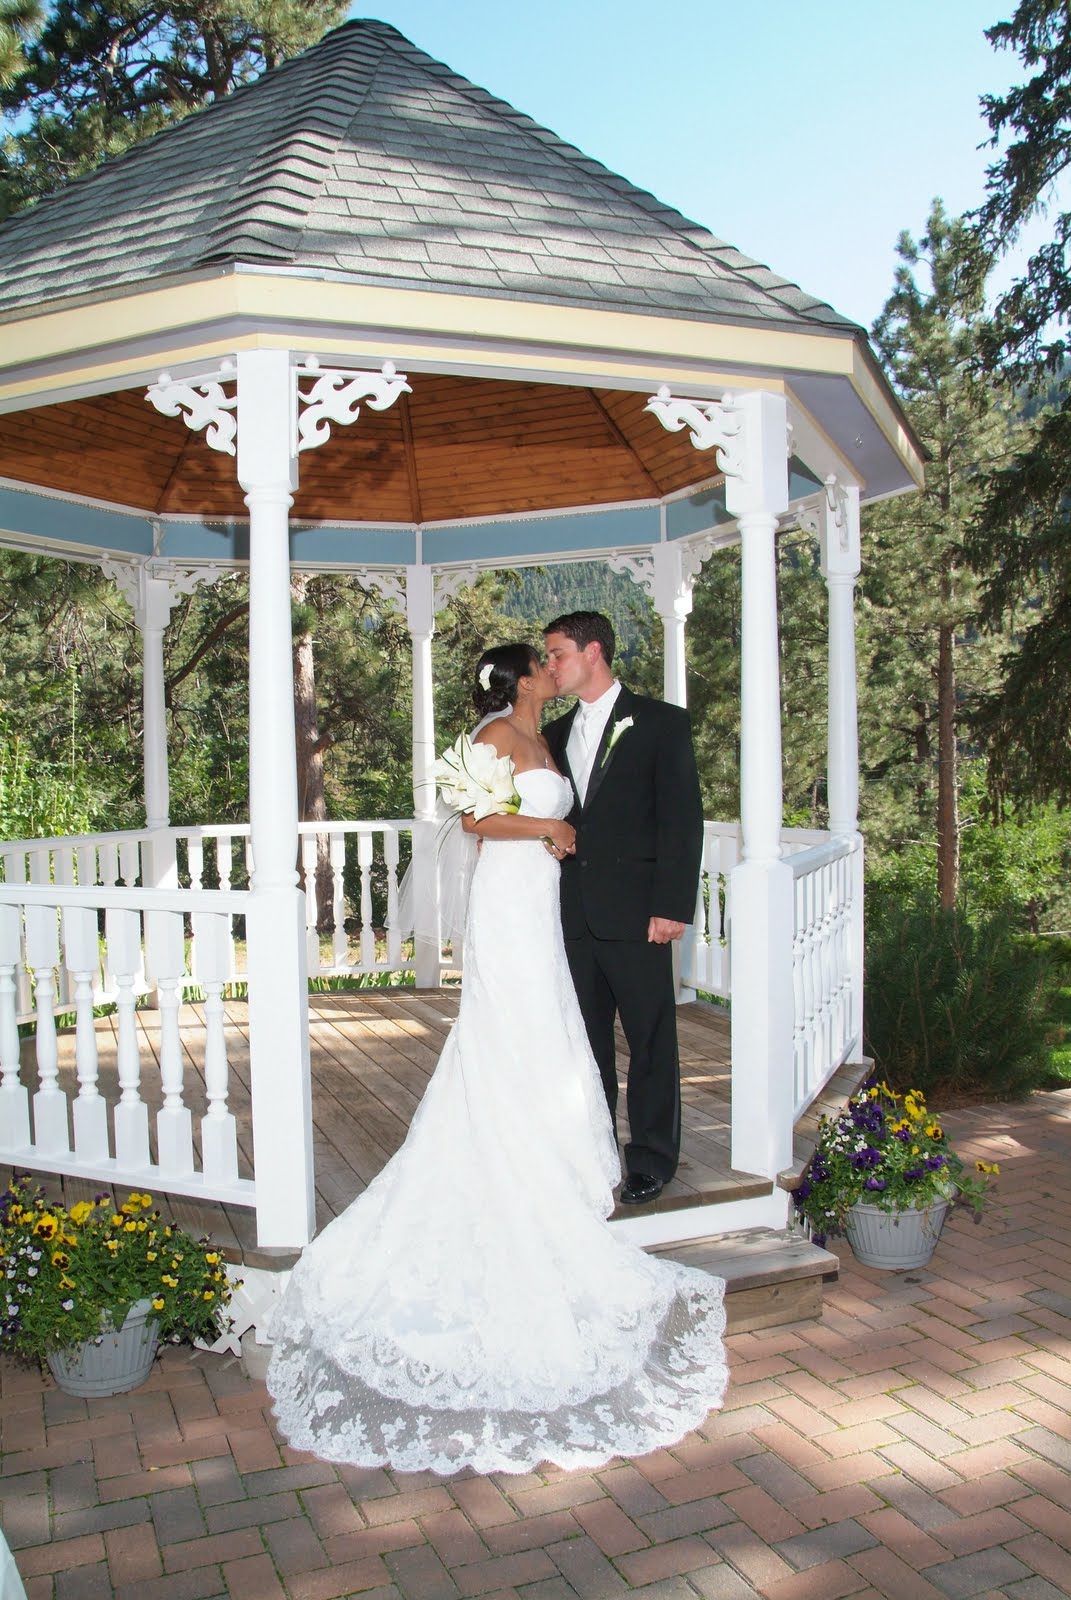 All Inclusive Wedding Destinations On Colorado Packages Springs Co At